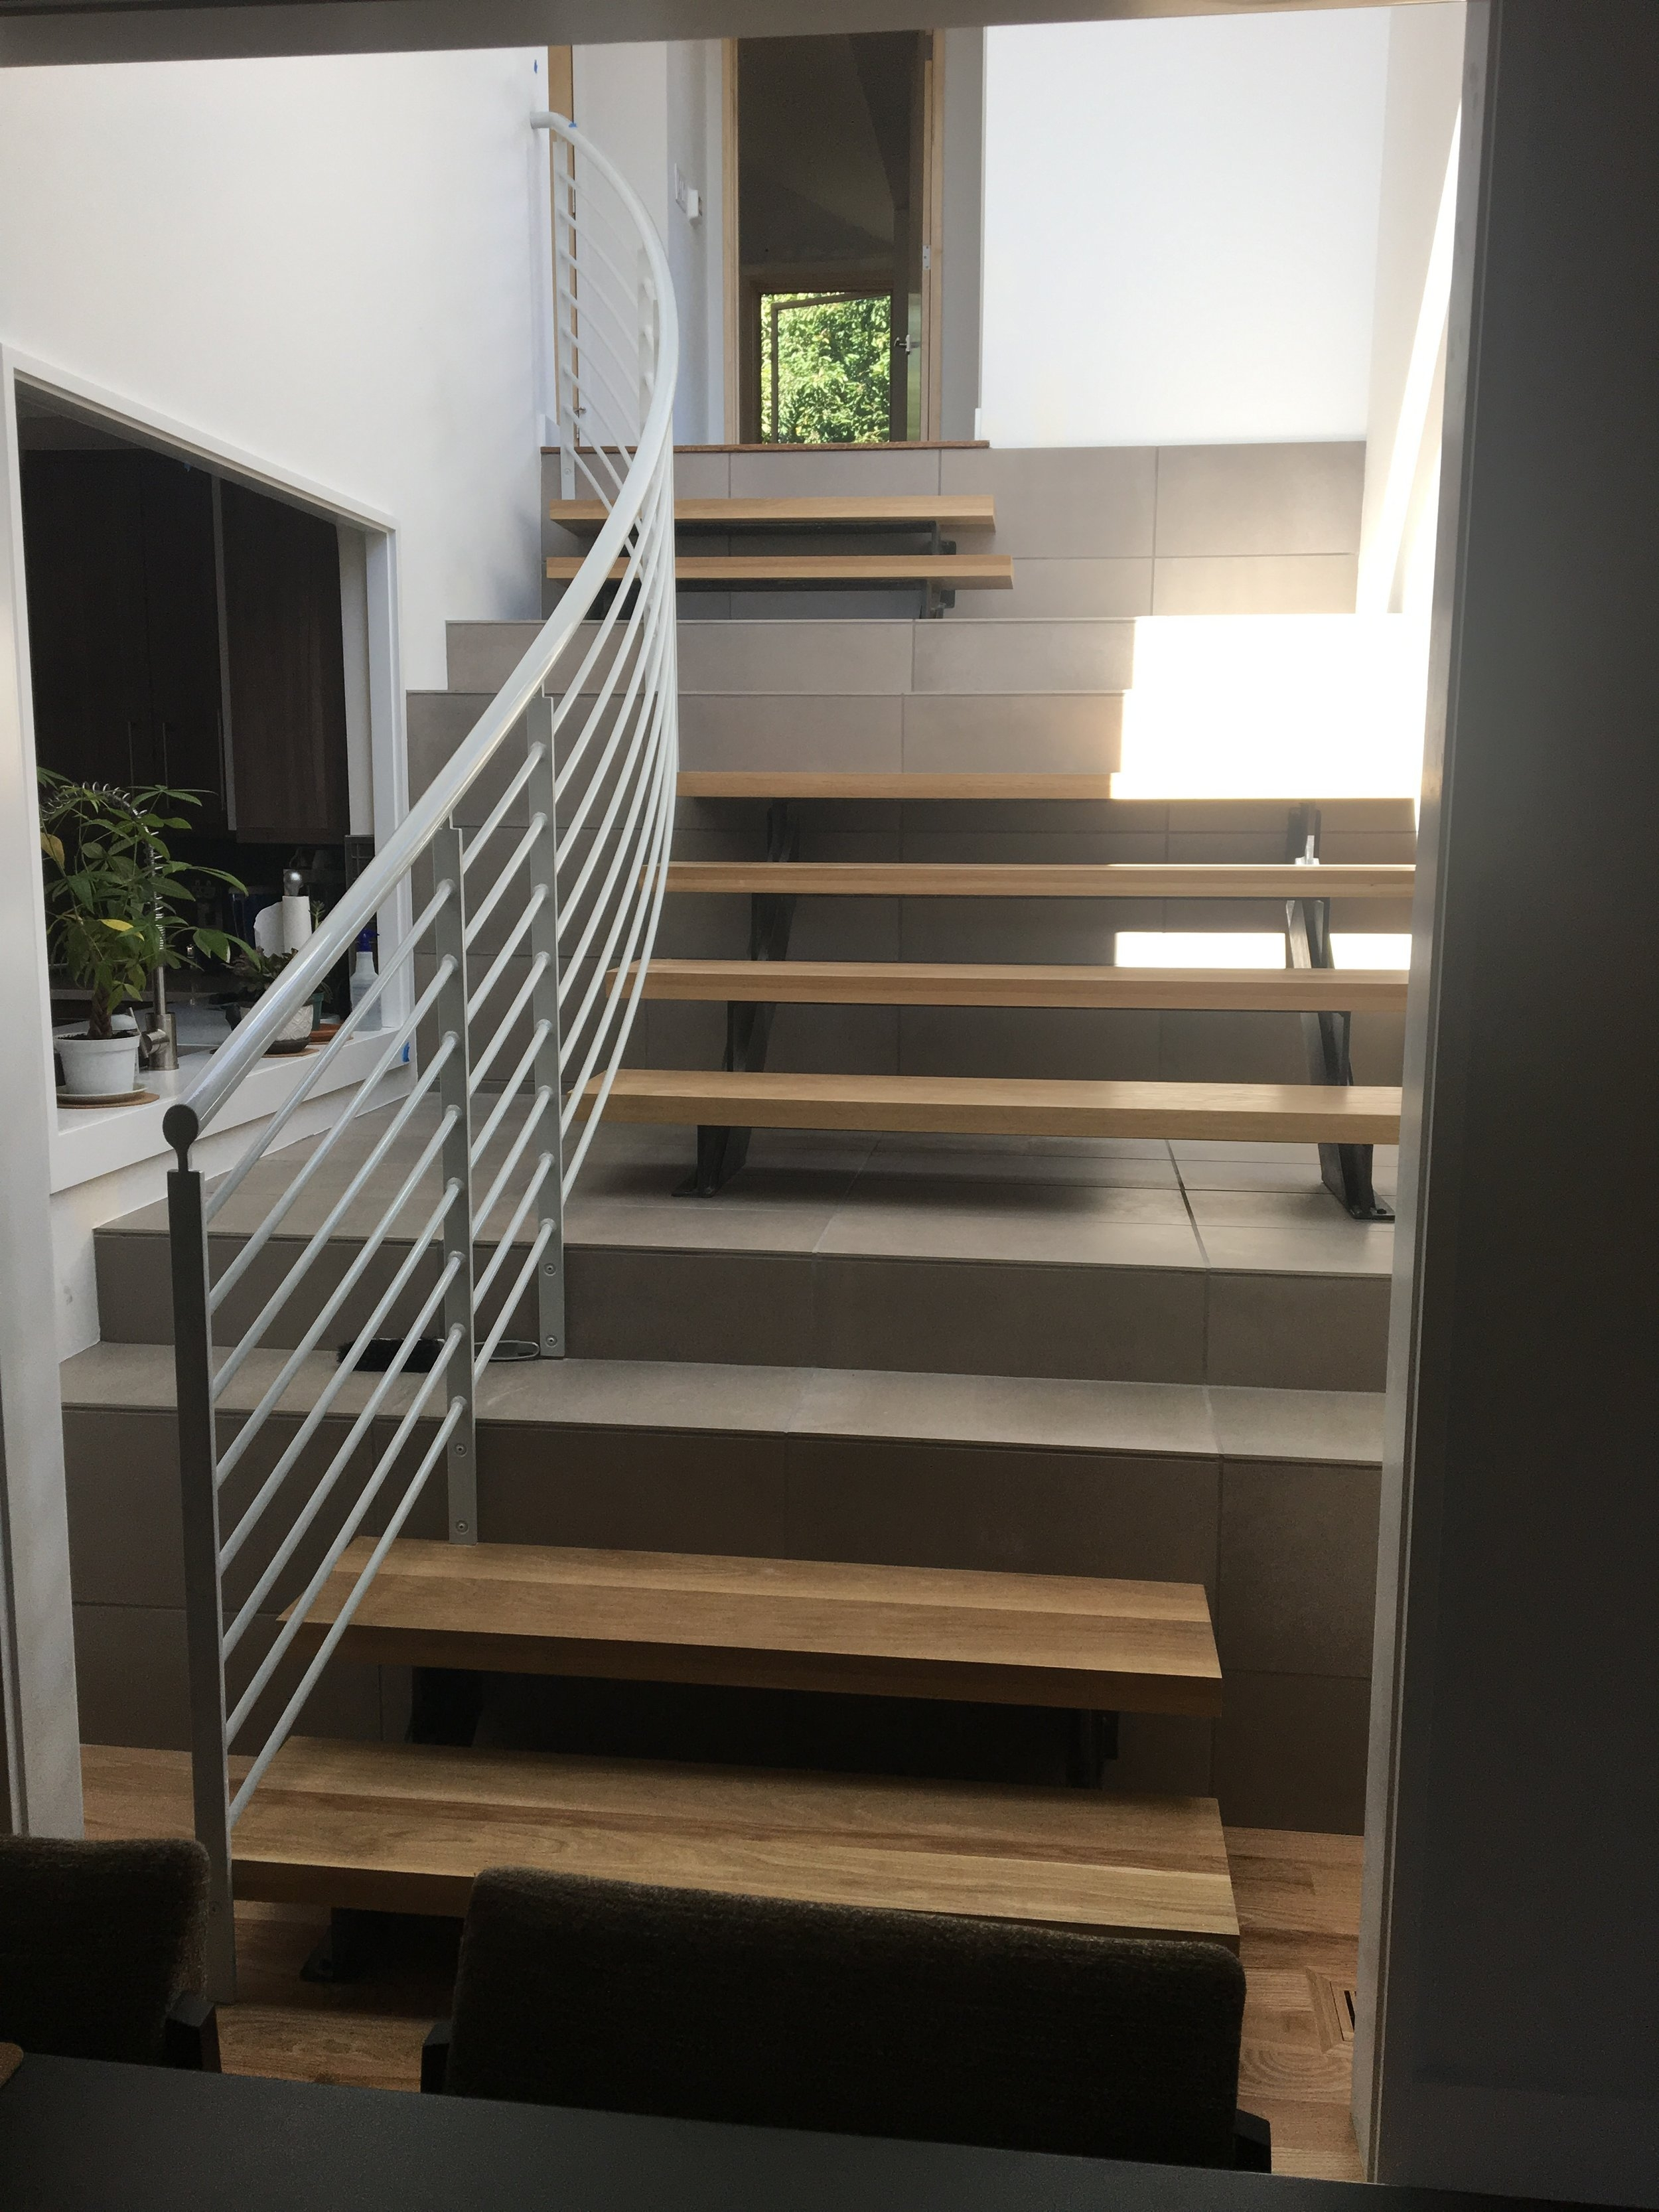 On Stairs — M Gerwing Architects   Wood And Tile Stairs   Rocell Living Room   Tile Floor   Basement   Quarter Round Stair Hardwood   White